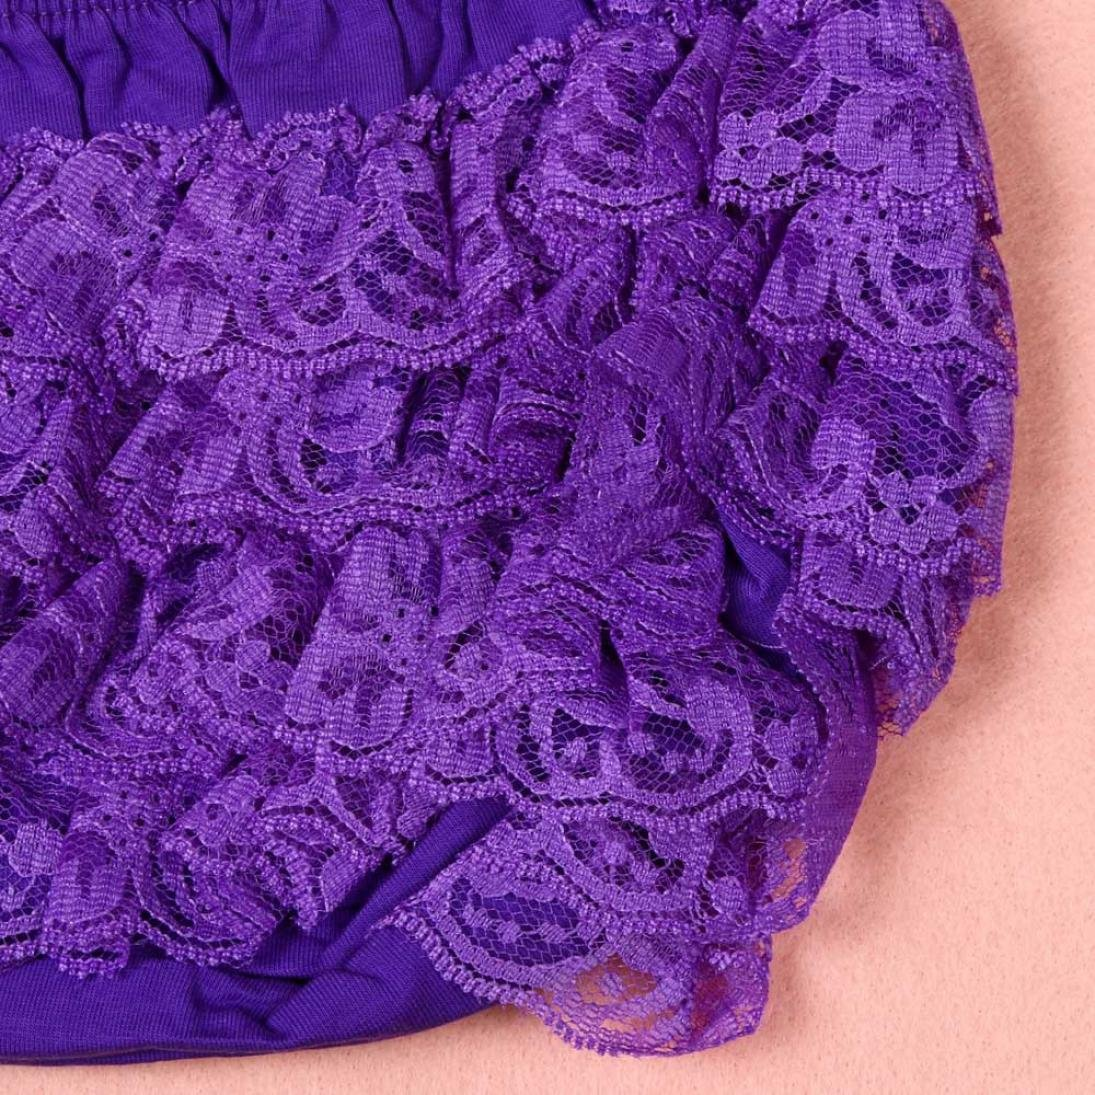 Toddler Baby Infant Lovely Lace Ruffle Bloomer PP Nappy Panty Diaper Cover Birthday Party Underwear SHOBDW Girls Shorts